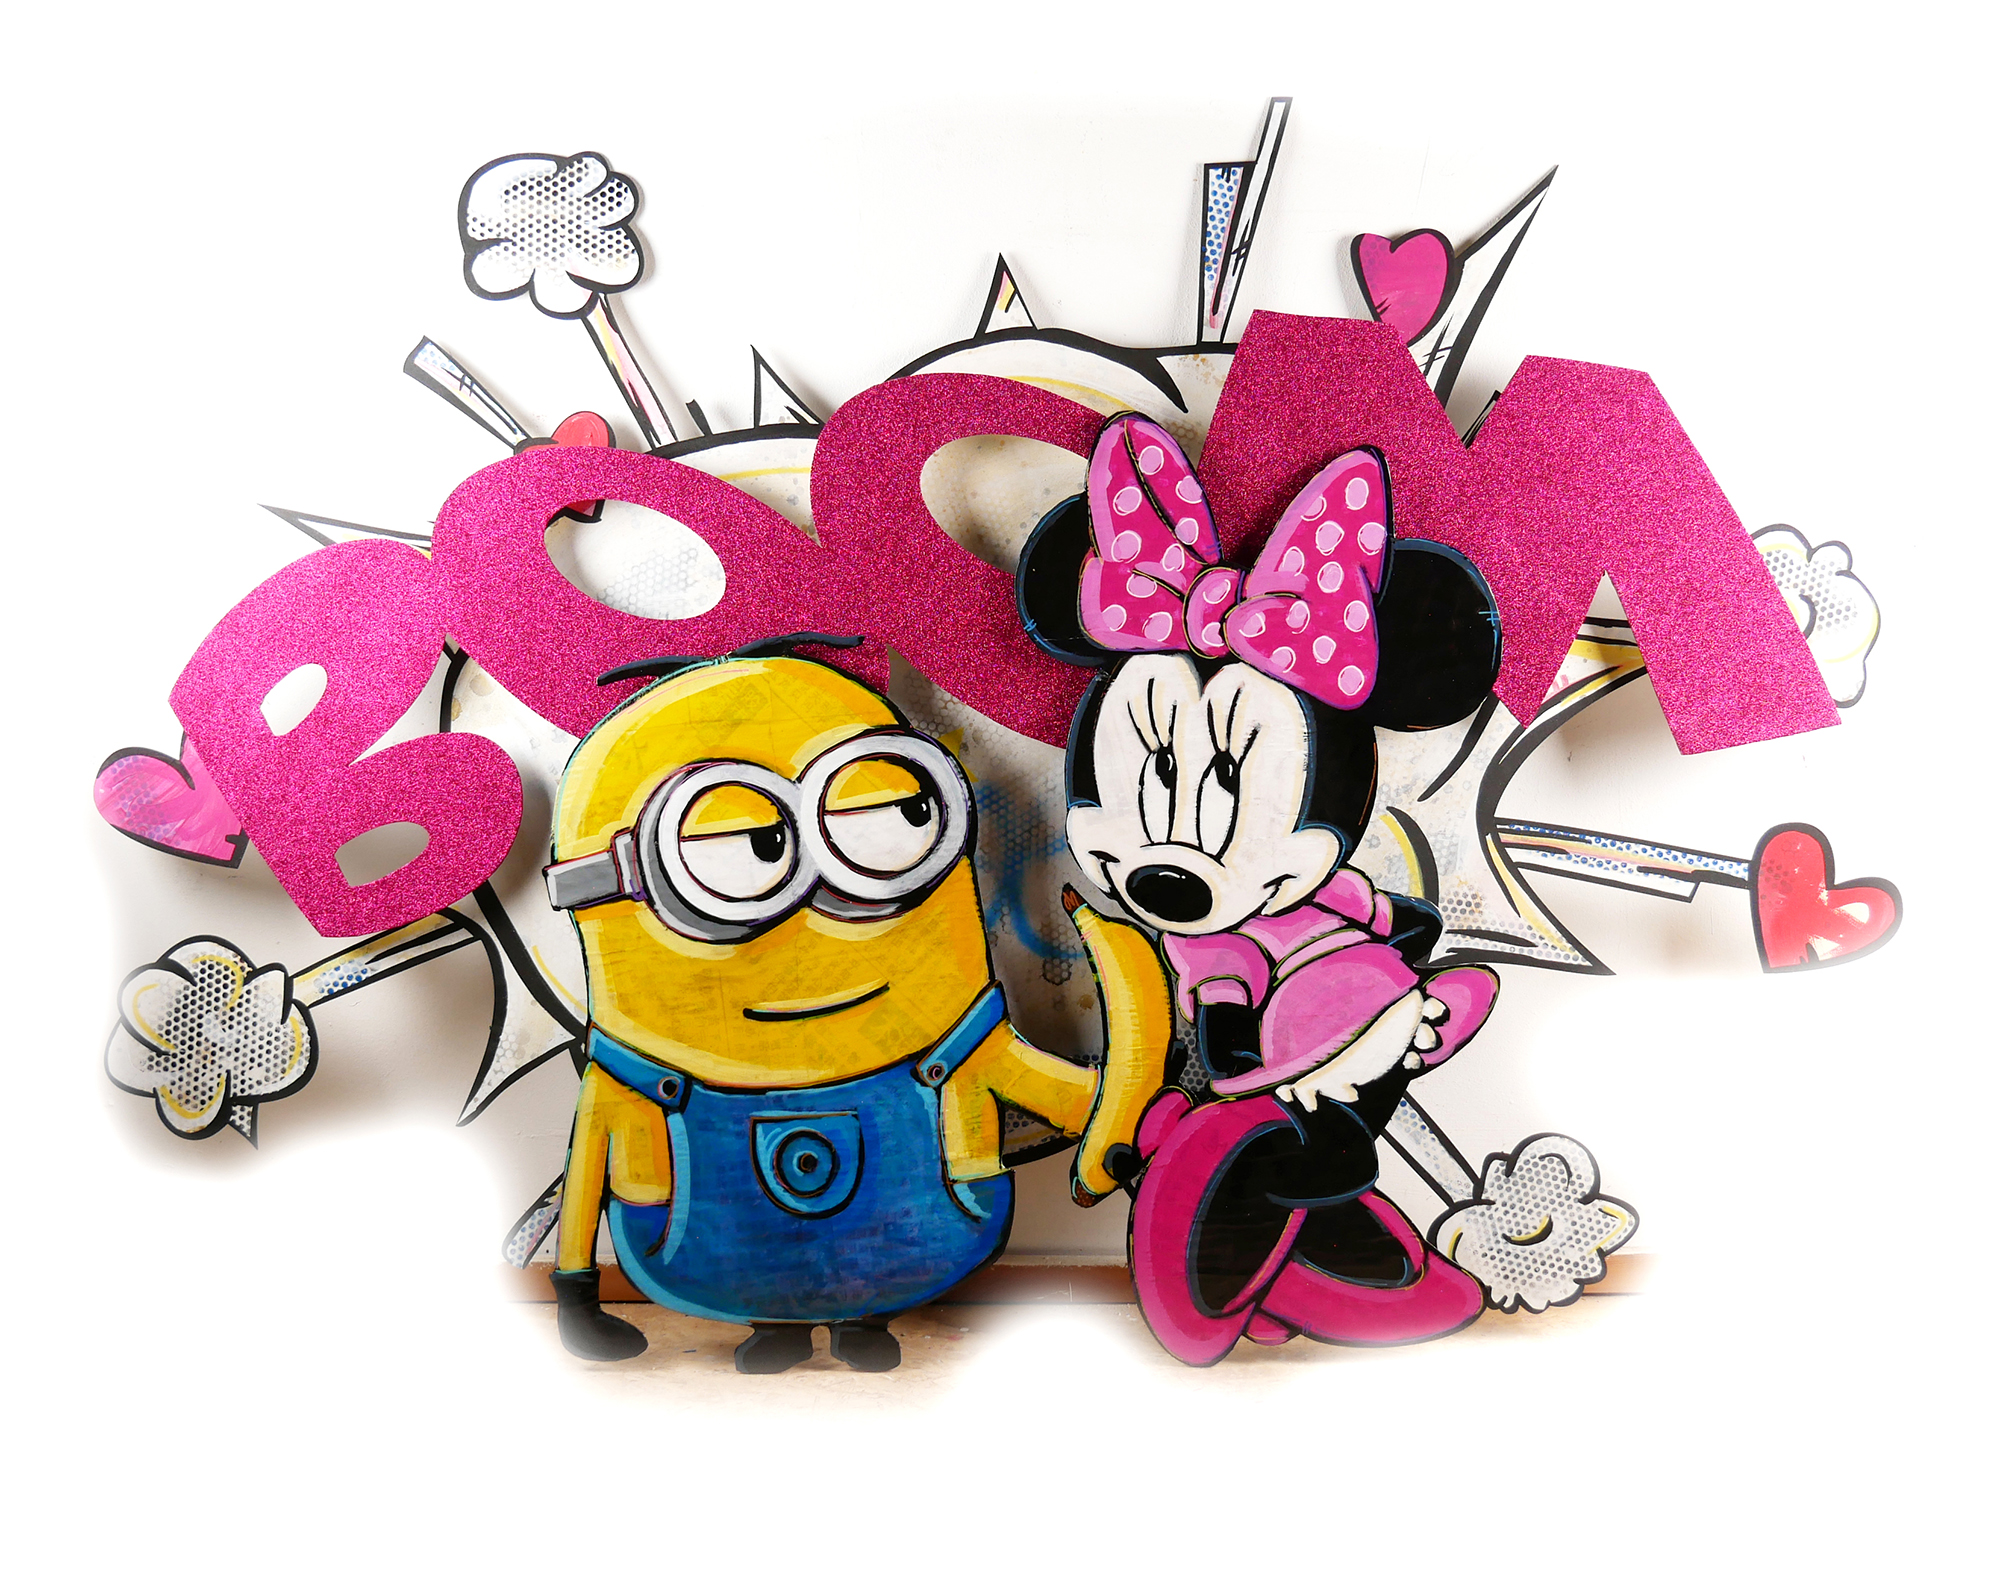 Tom Boston - Boom (Minnie & Minion) , 8022-006-216